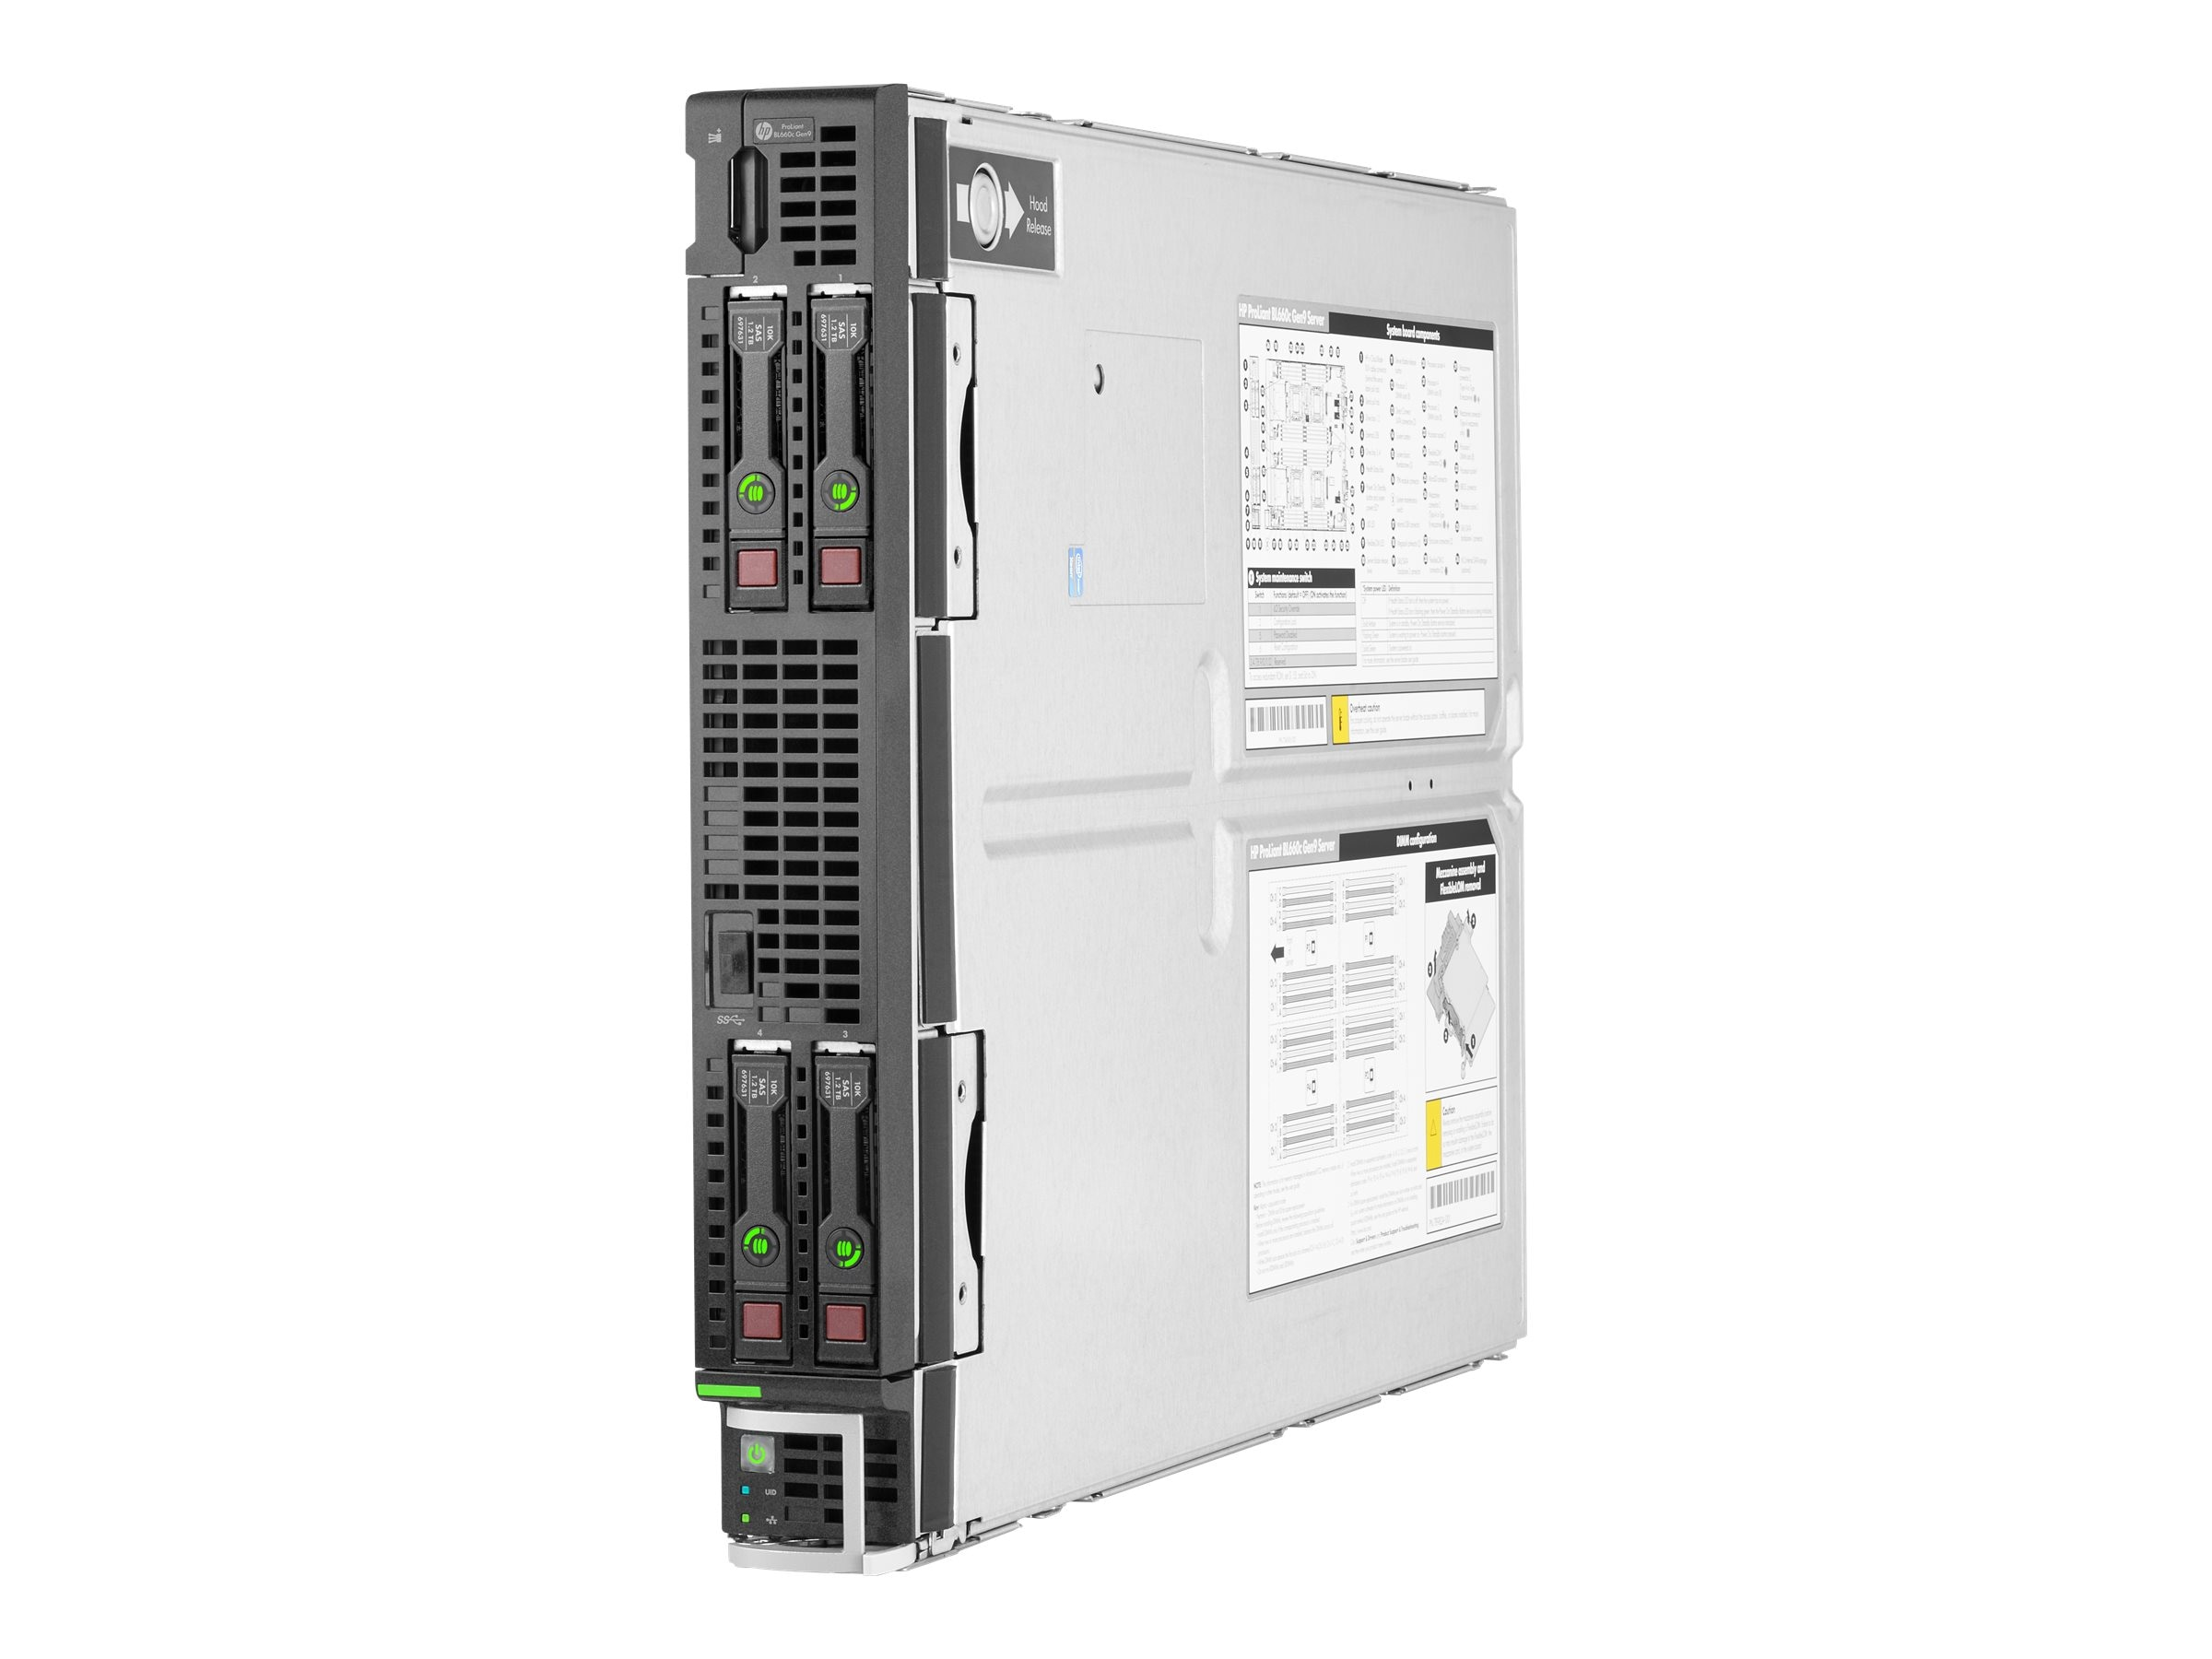 HP ProLiant BL660c Gen9 Intel 2.6GHz Xeon Xeon, 728350-B21, 22902494, Servers - Blade